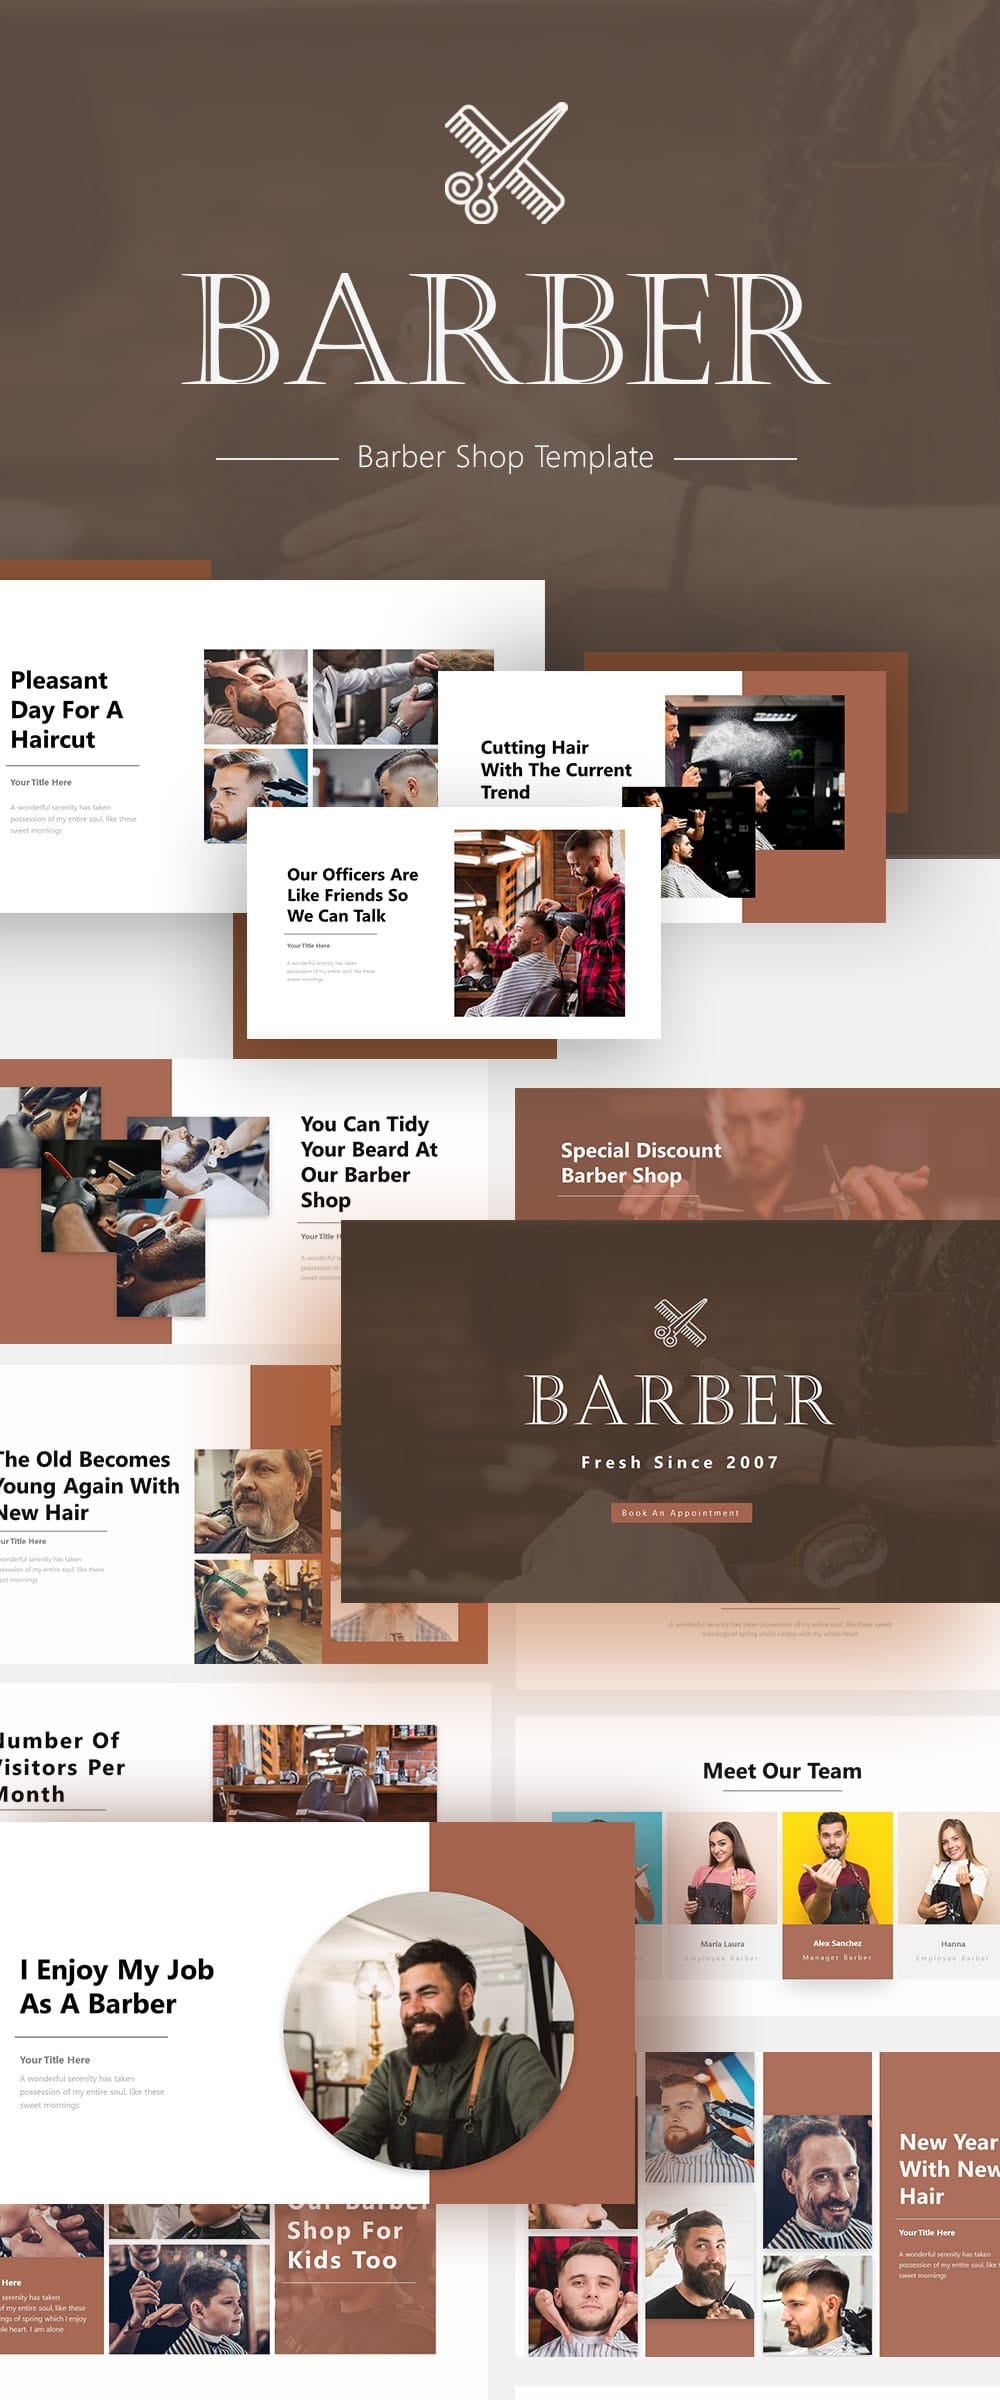 Free Barber Business PowerPoint